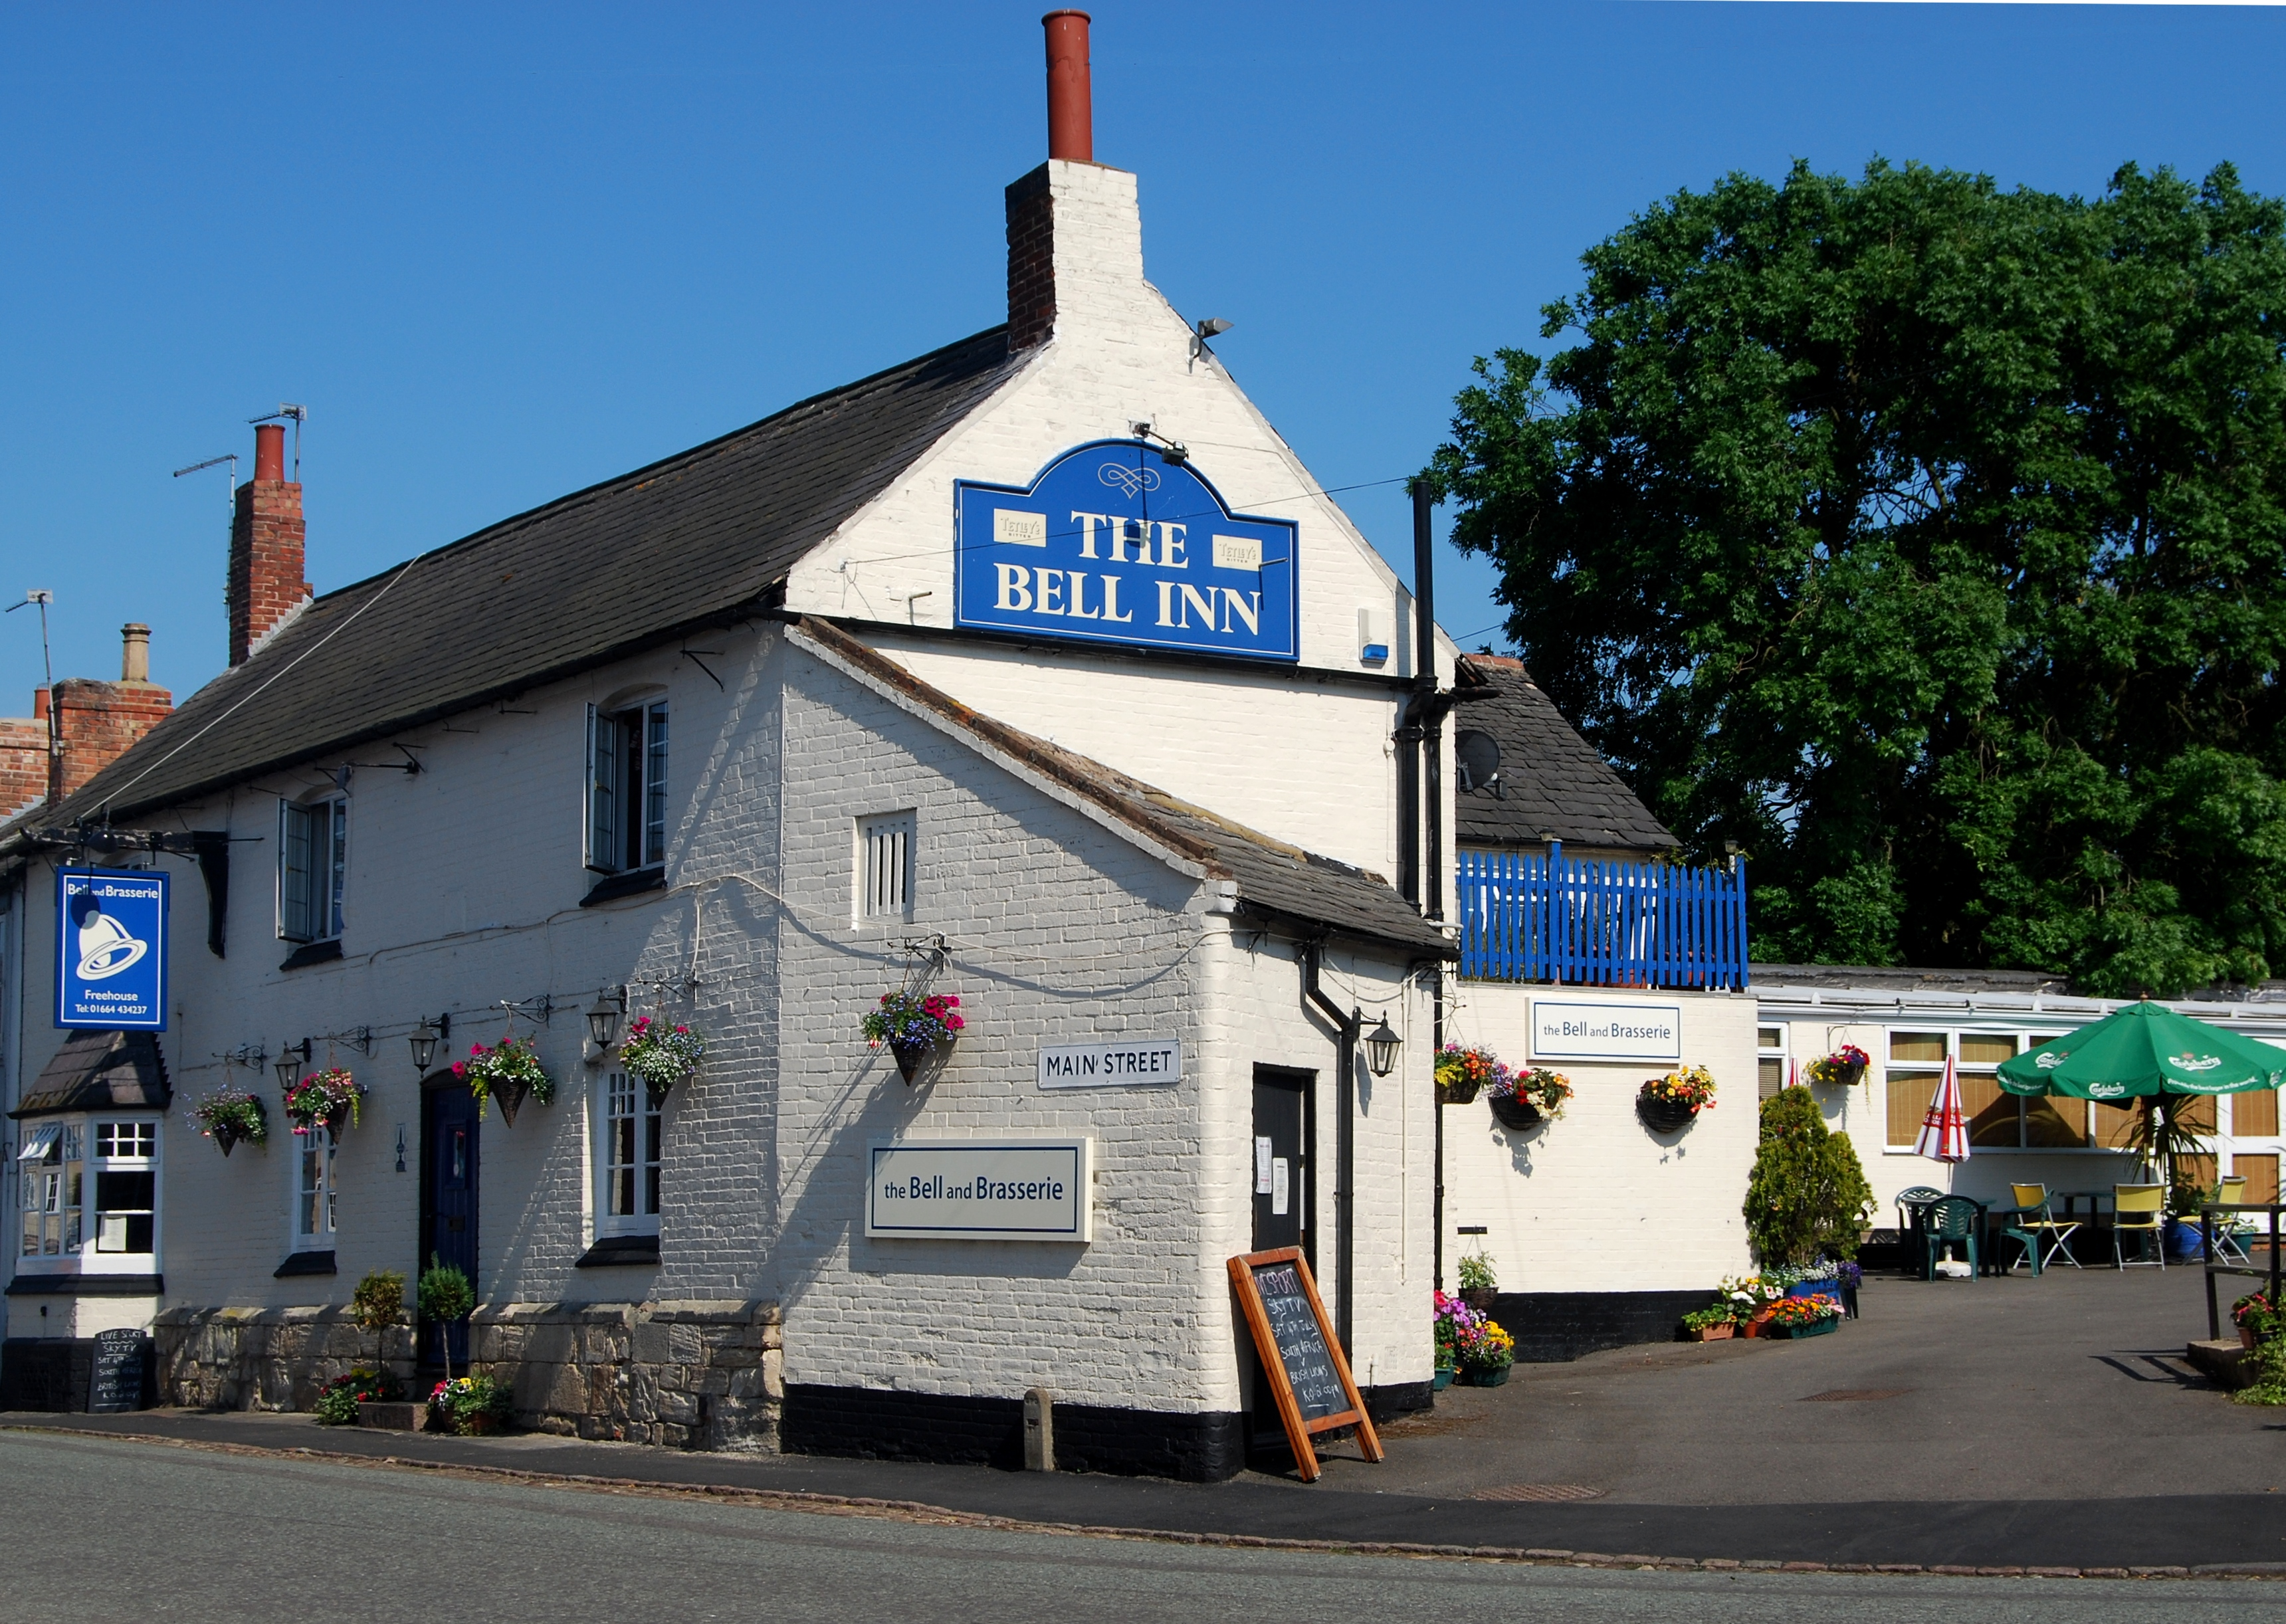 The Bell Inn Hotel Horndon On The Hill